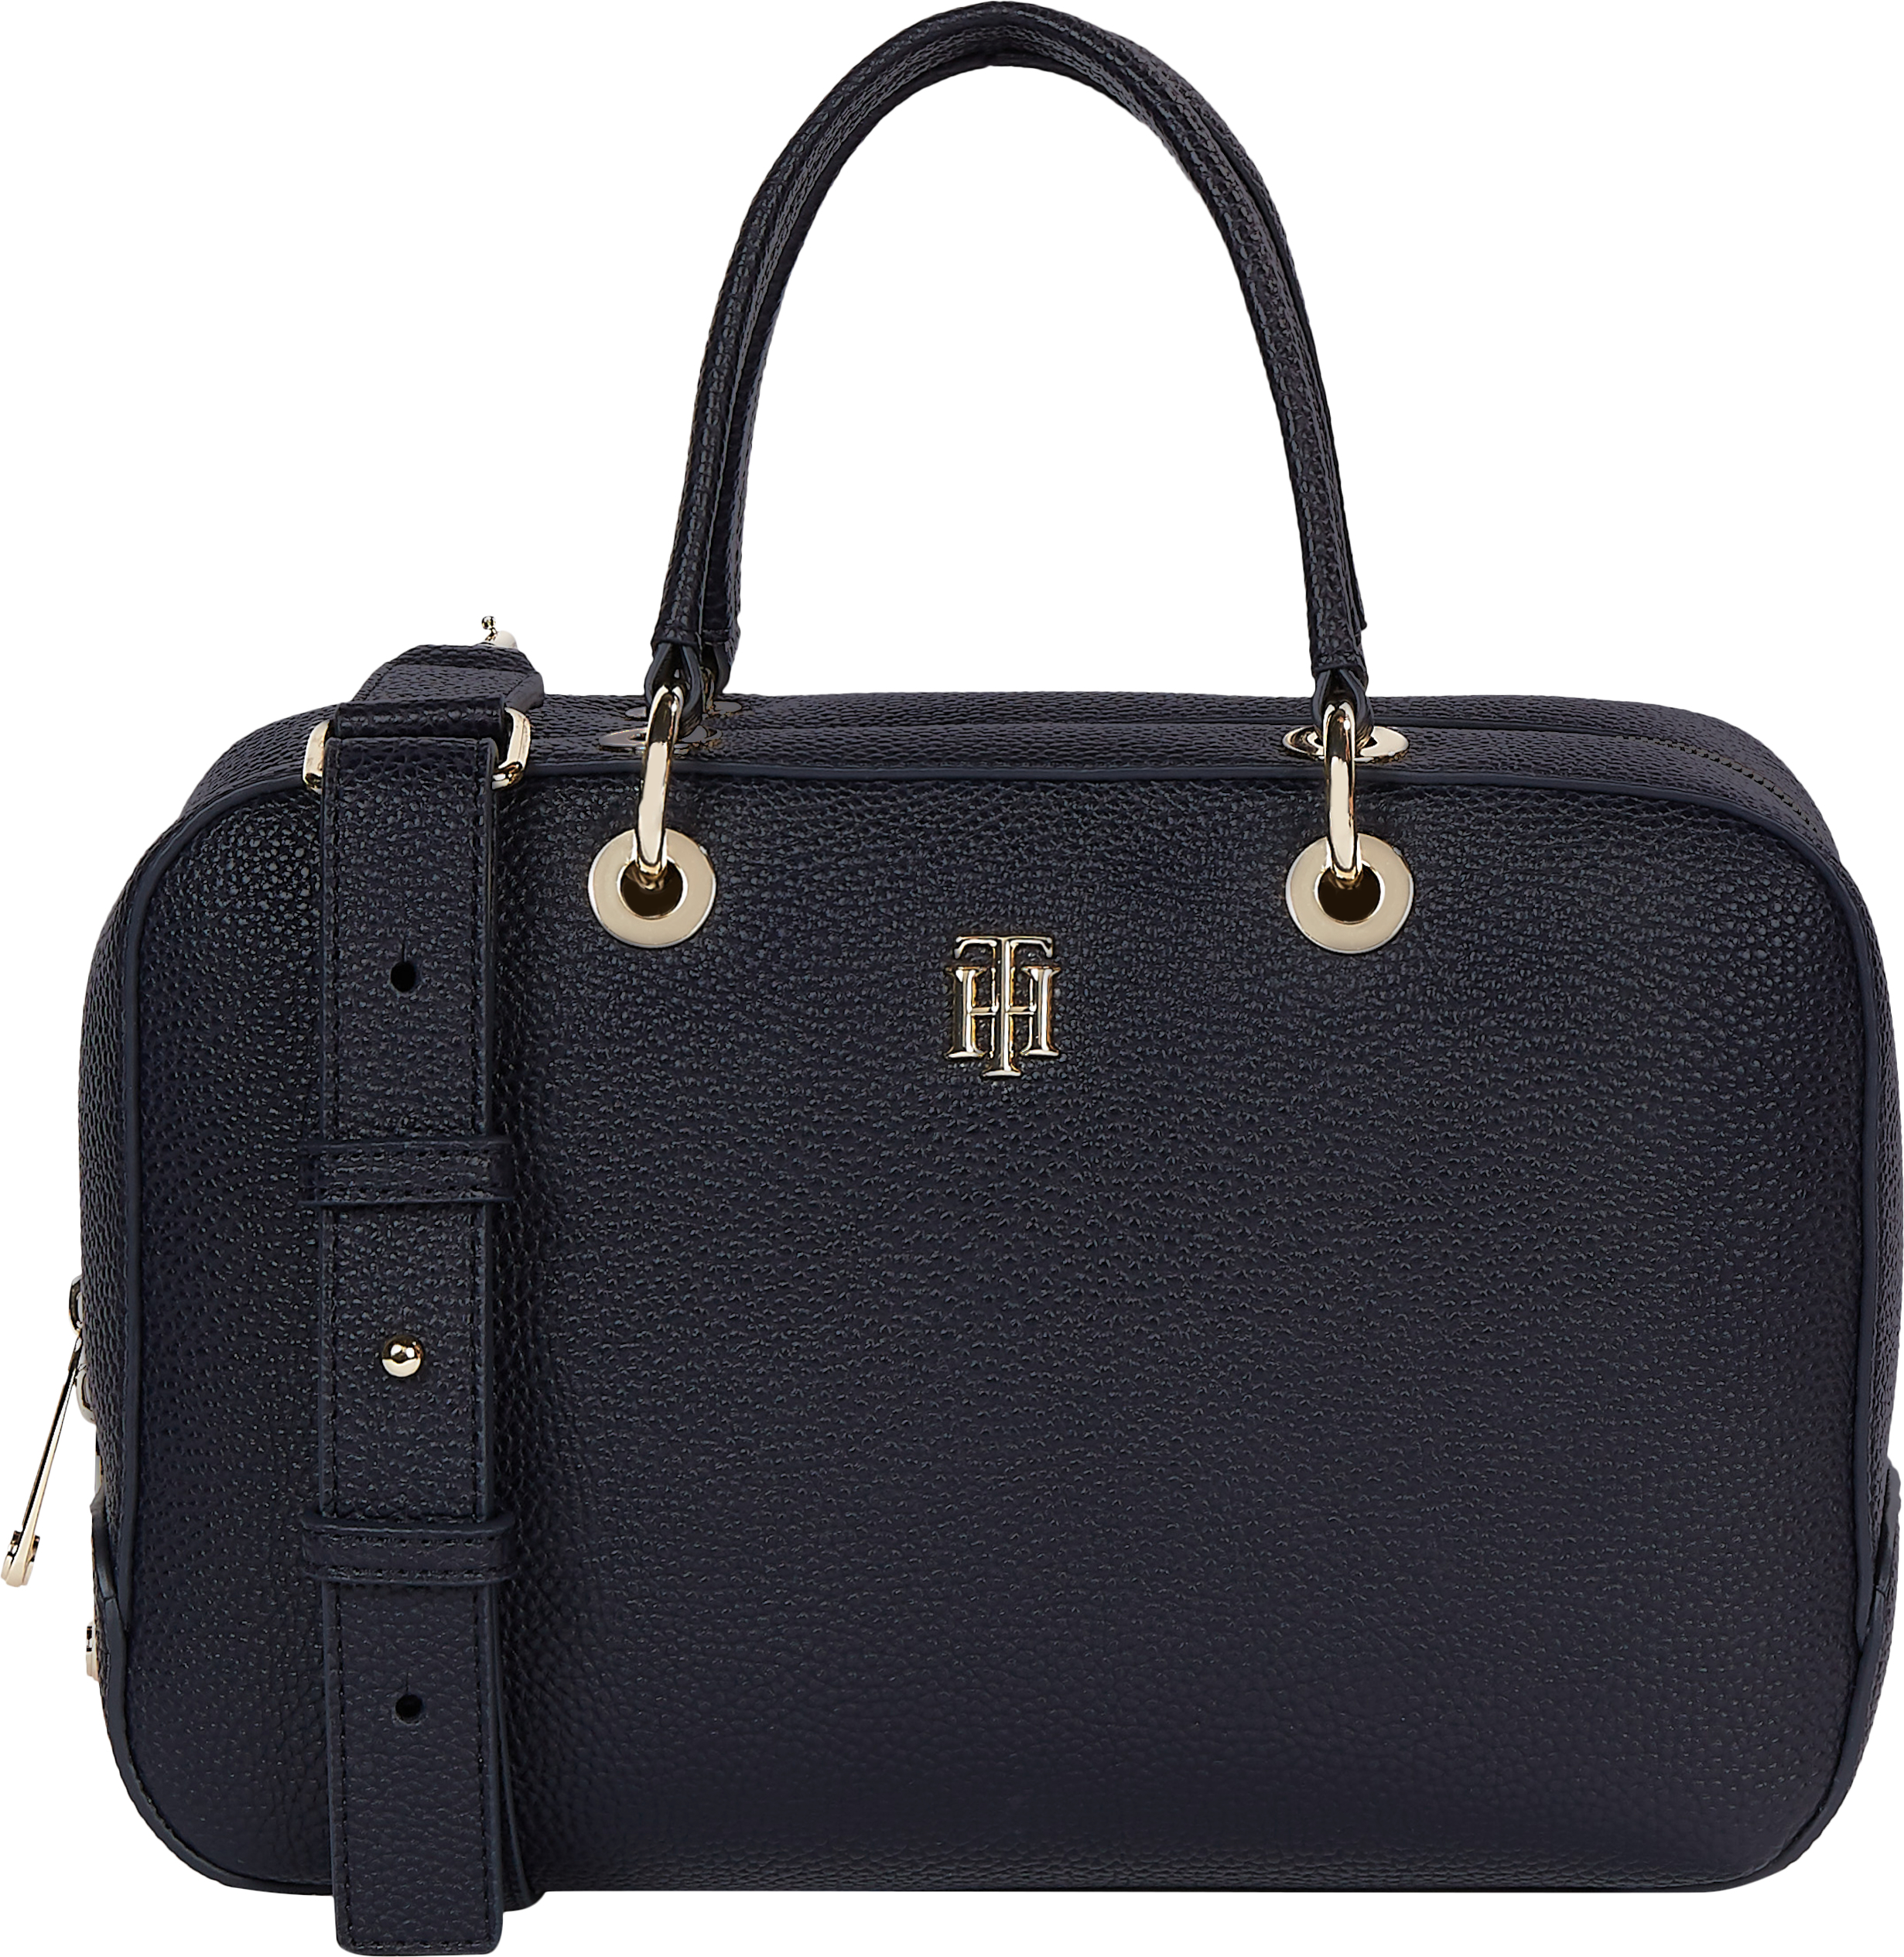 Tommy Hilfiger TH ESSENCE DUFFLE CORP